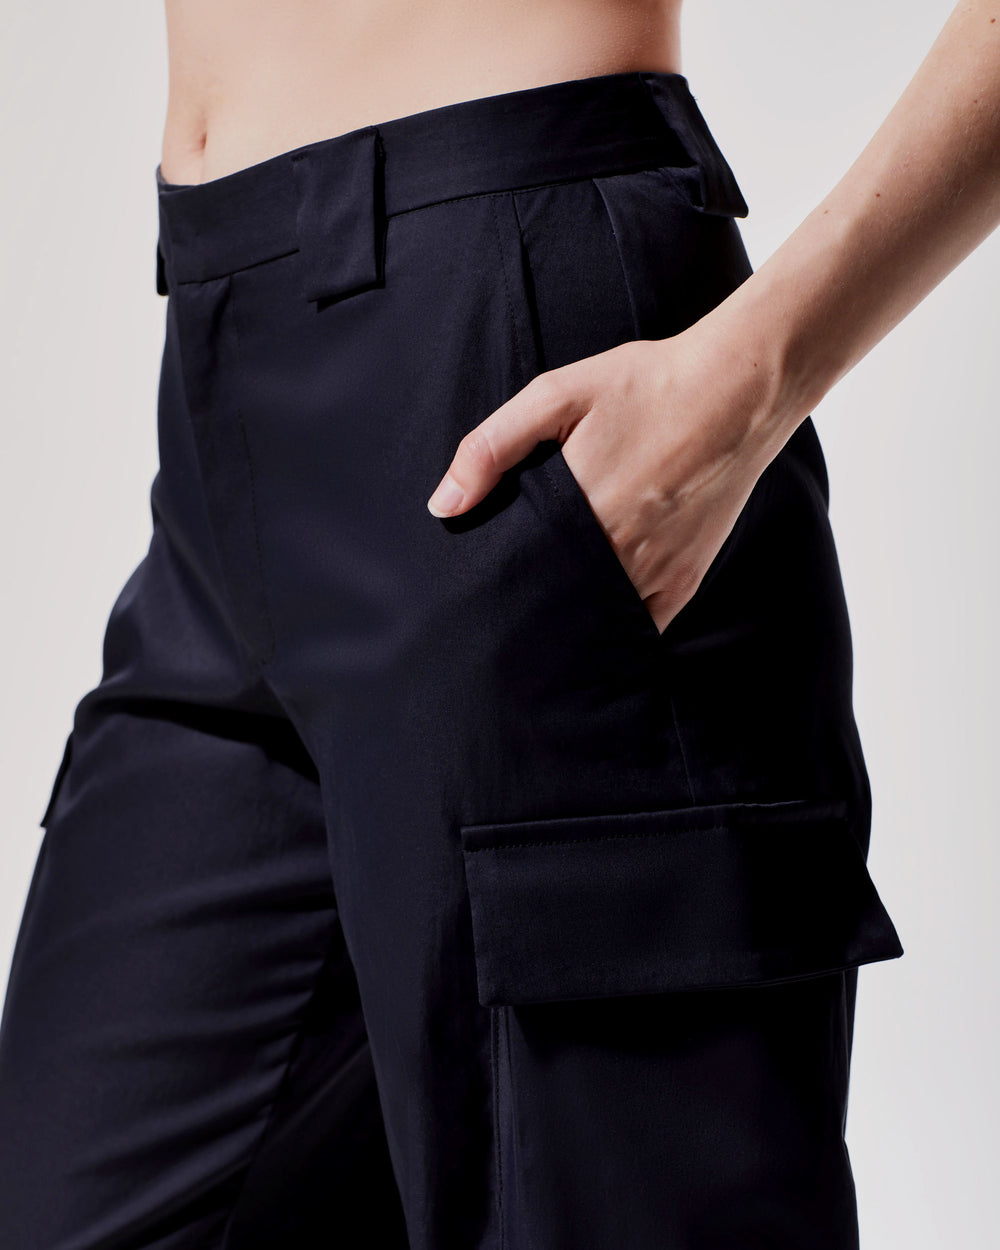 Ares Pant - Black